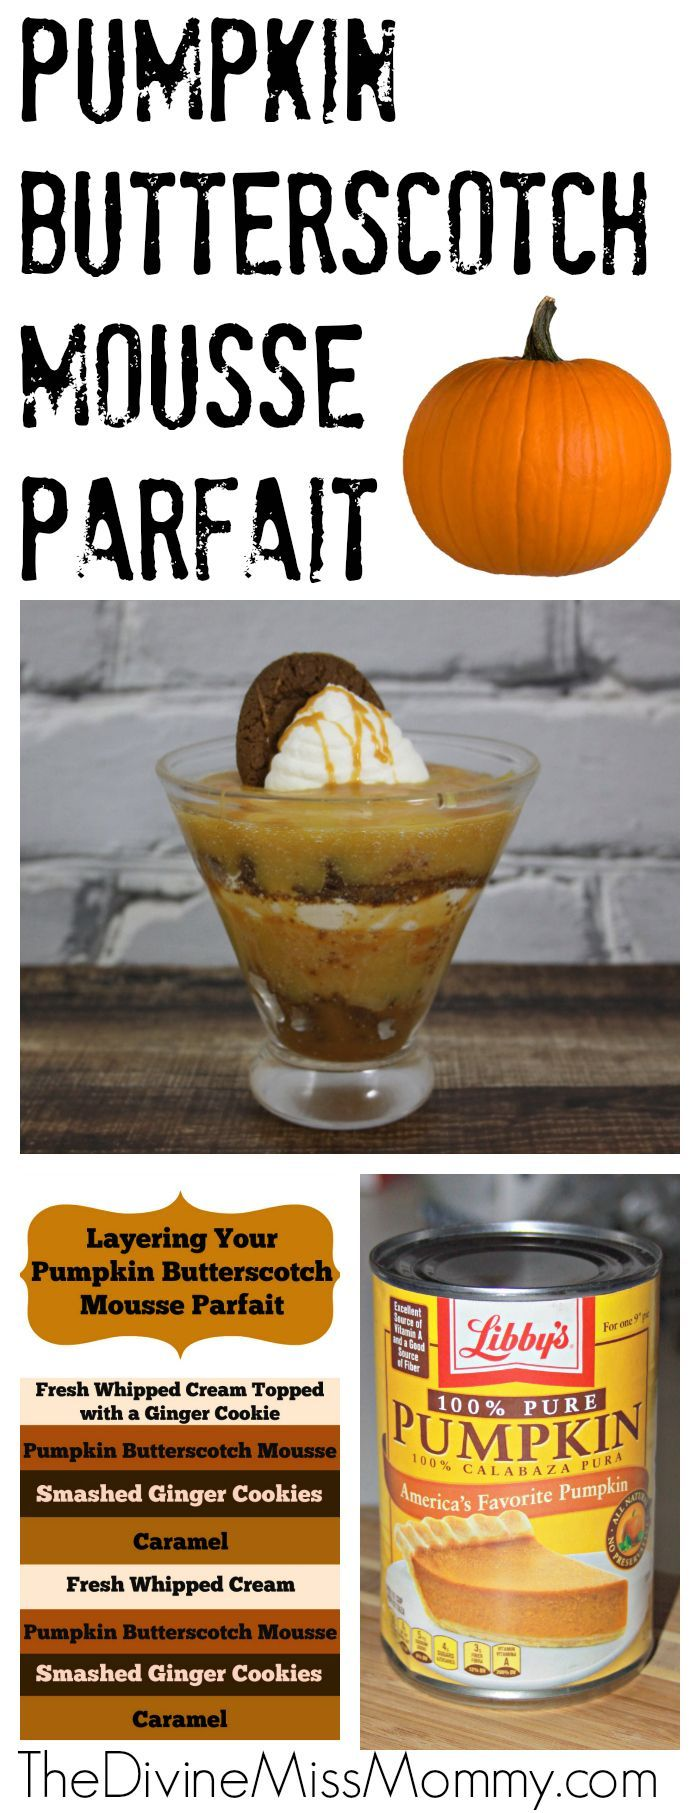 Pumpkin Butterscotch Mousse Parfait